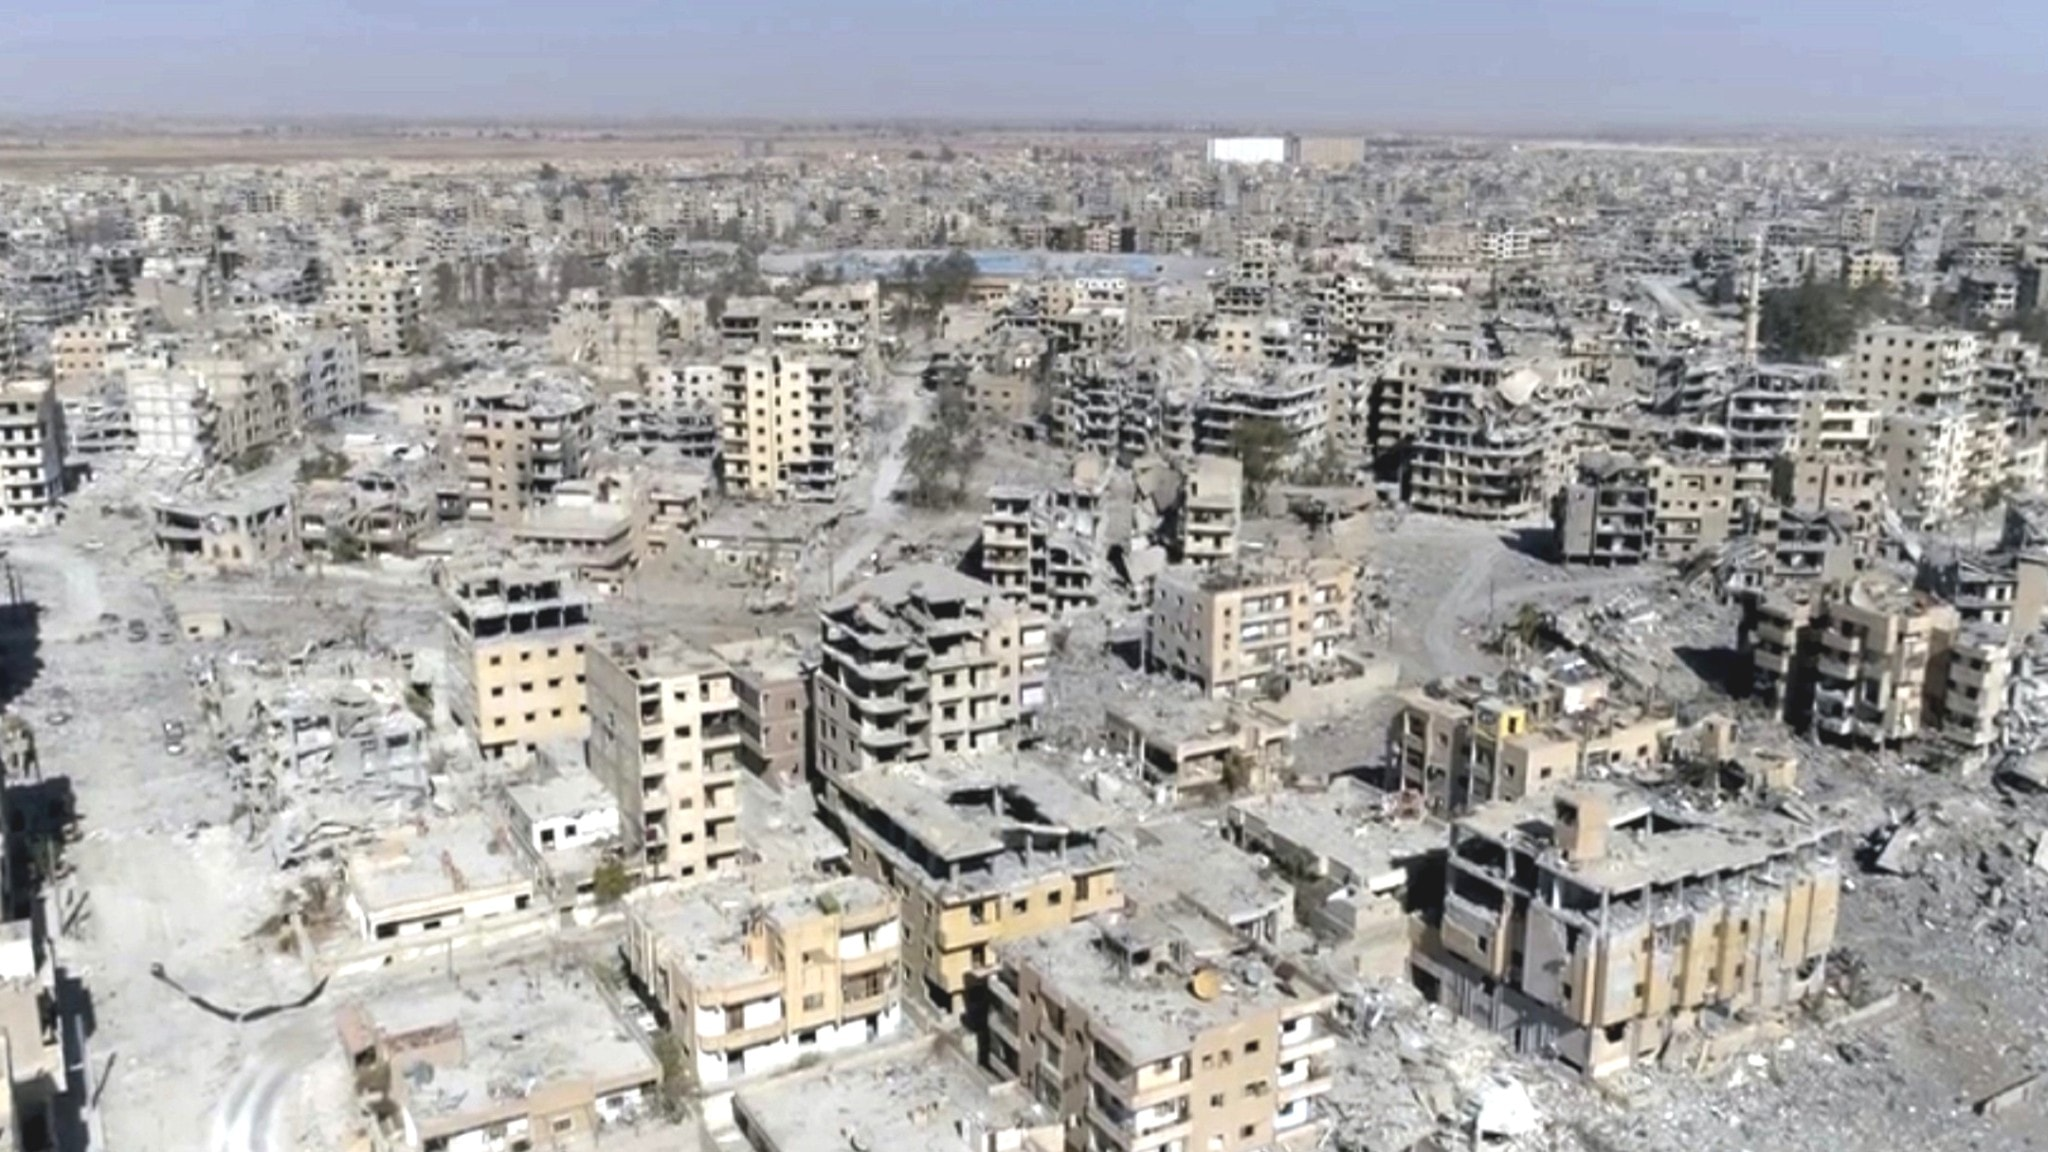 A view of Raqqa from a drone.